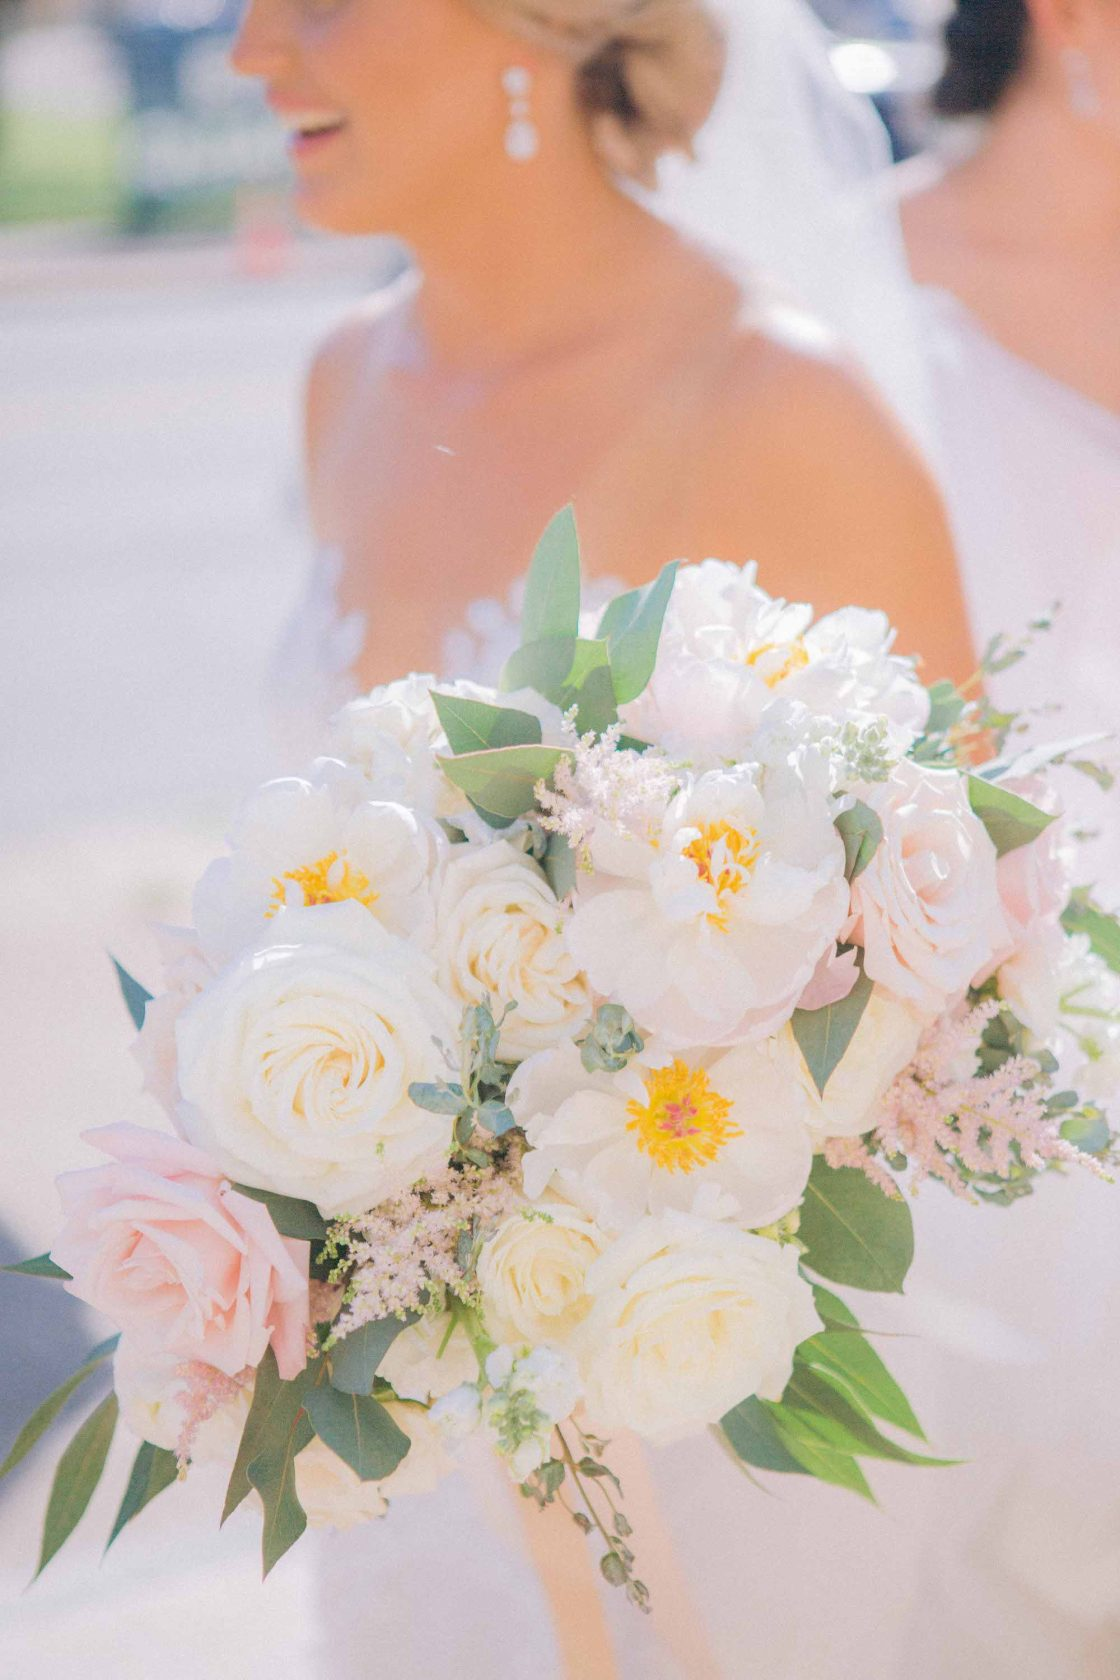 Ivory Rose and Blush Astilbe Wedding Bouquet